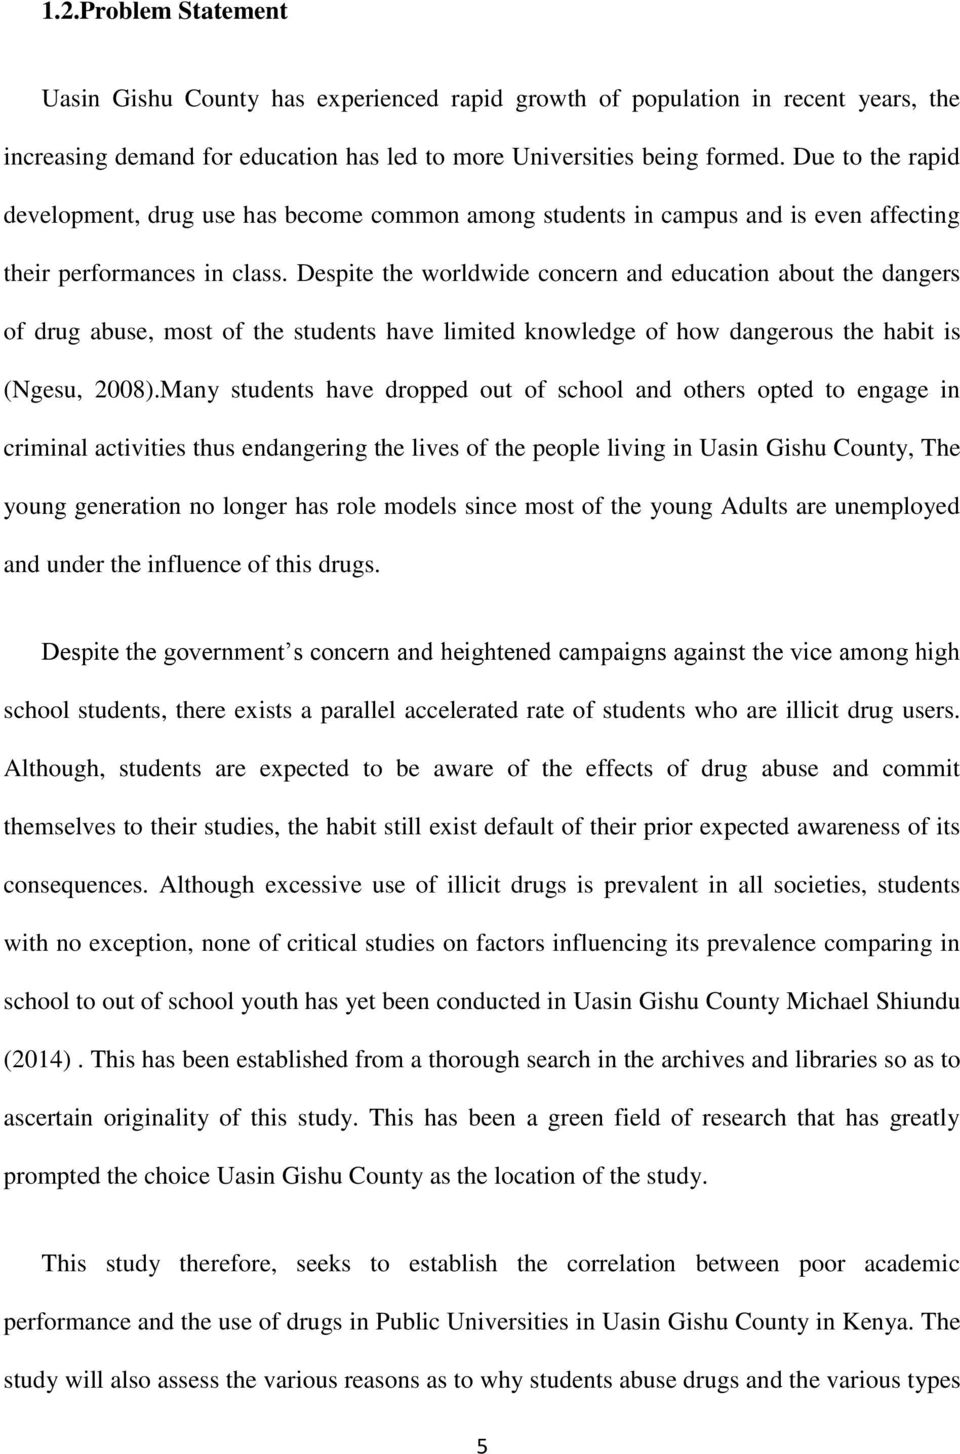 essay on drug addiction in drug addiction term papers